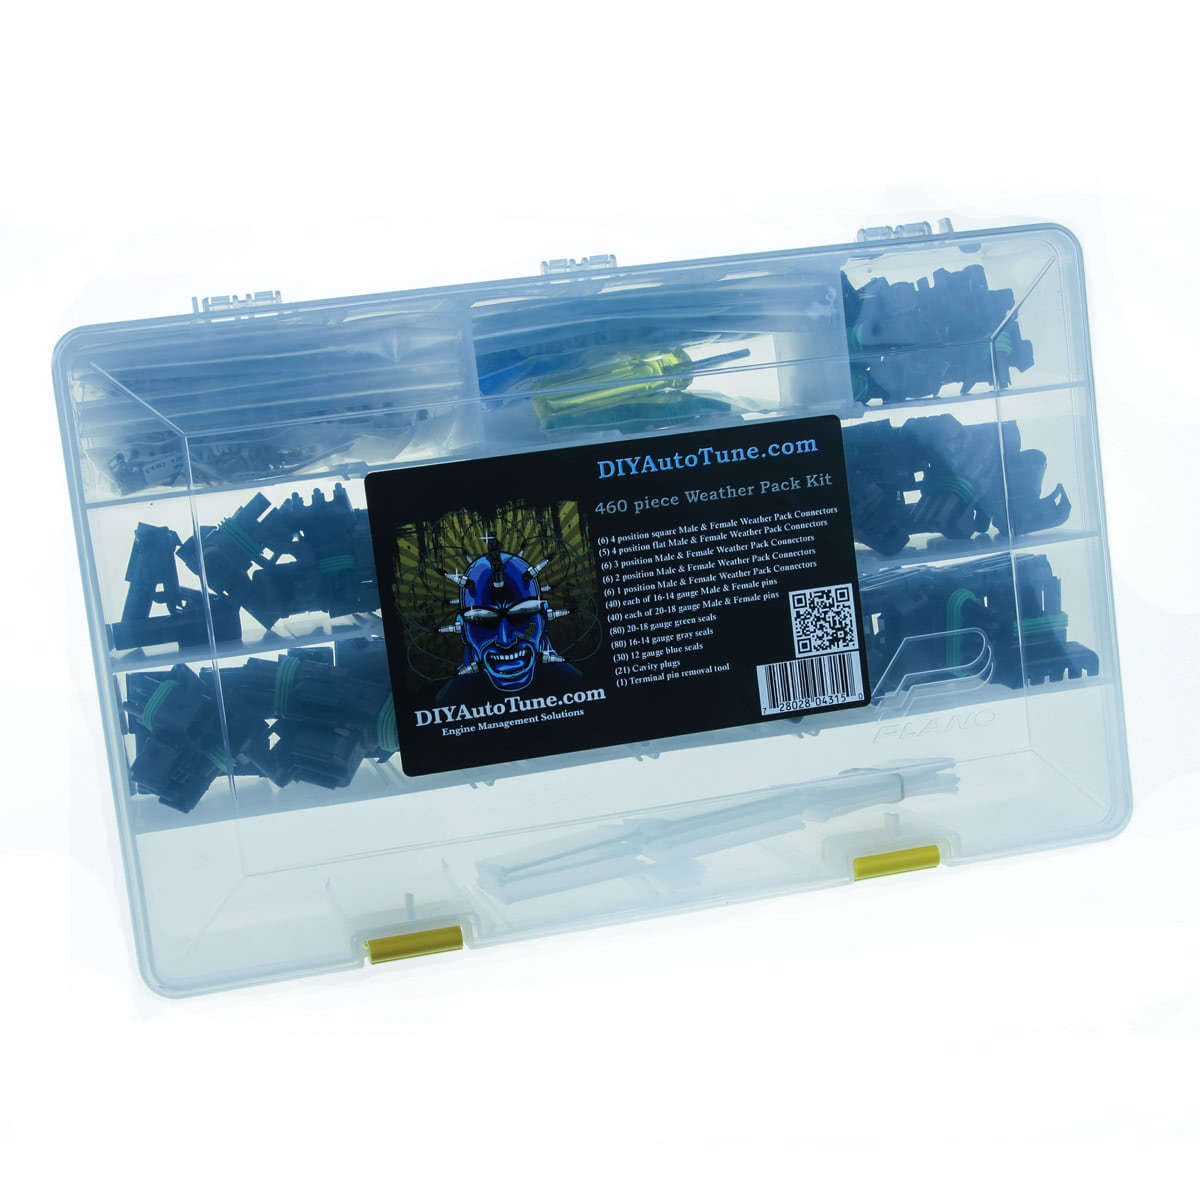 MegaSquirt Weather Pack Kits